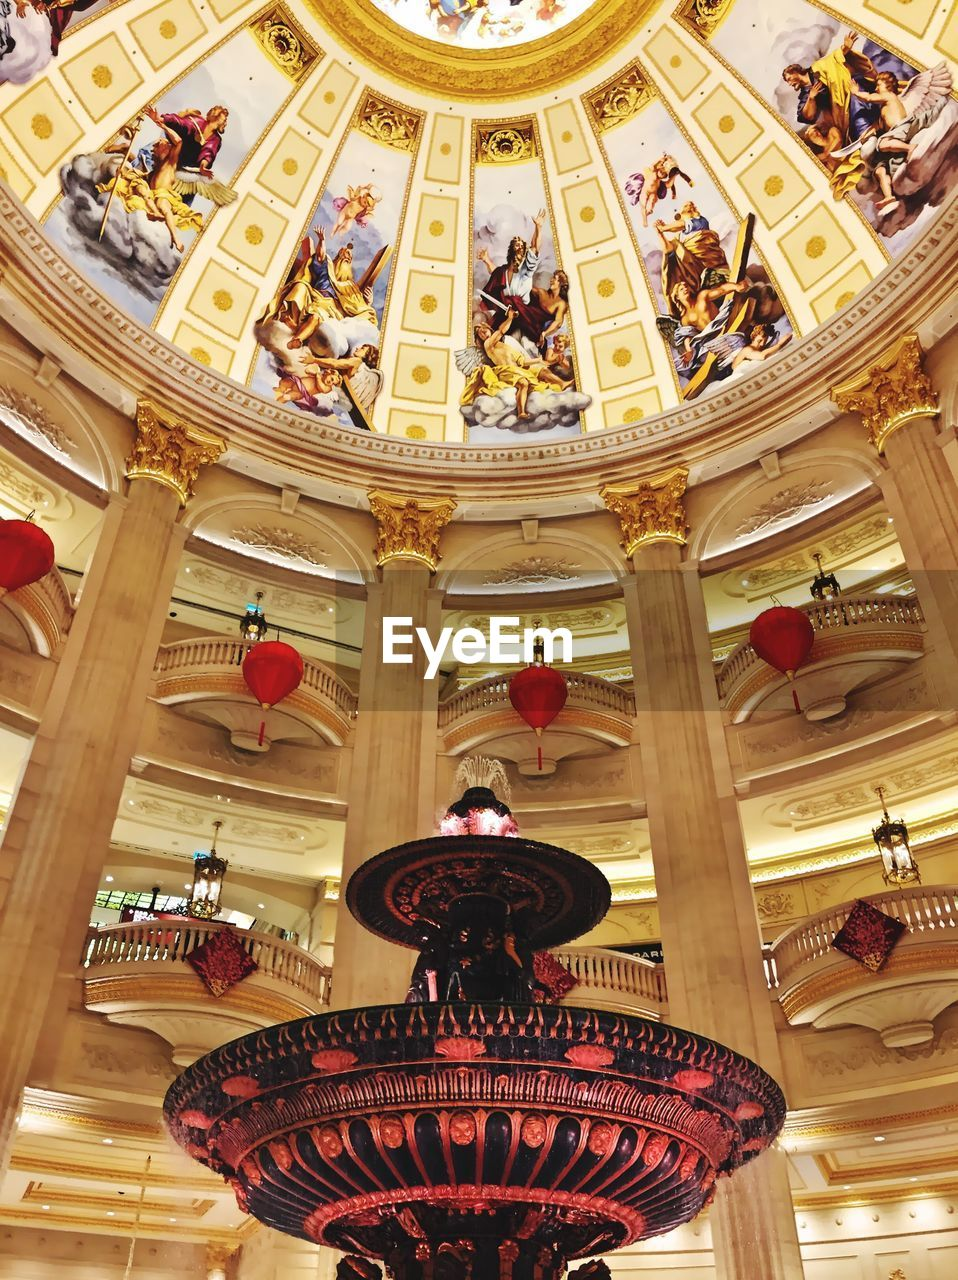 built structure, low angle view, architecture, indoors, ceiling, art and craft, ornate, illuminated, building, architectural column, craft, decoration, no people, travel destinations, pattern, lighting equipment, place of worship, travel, the past, cupola